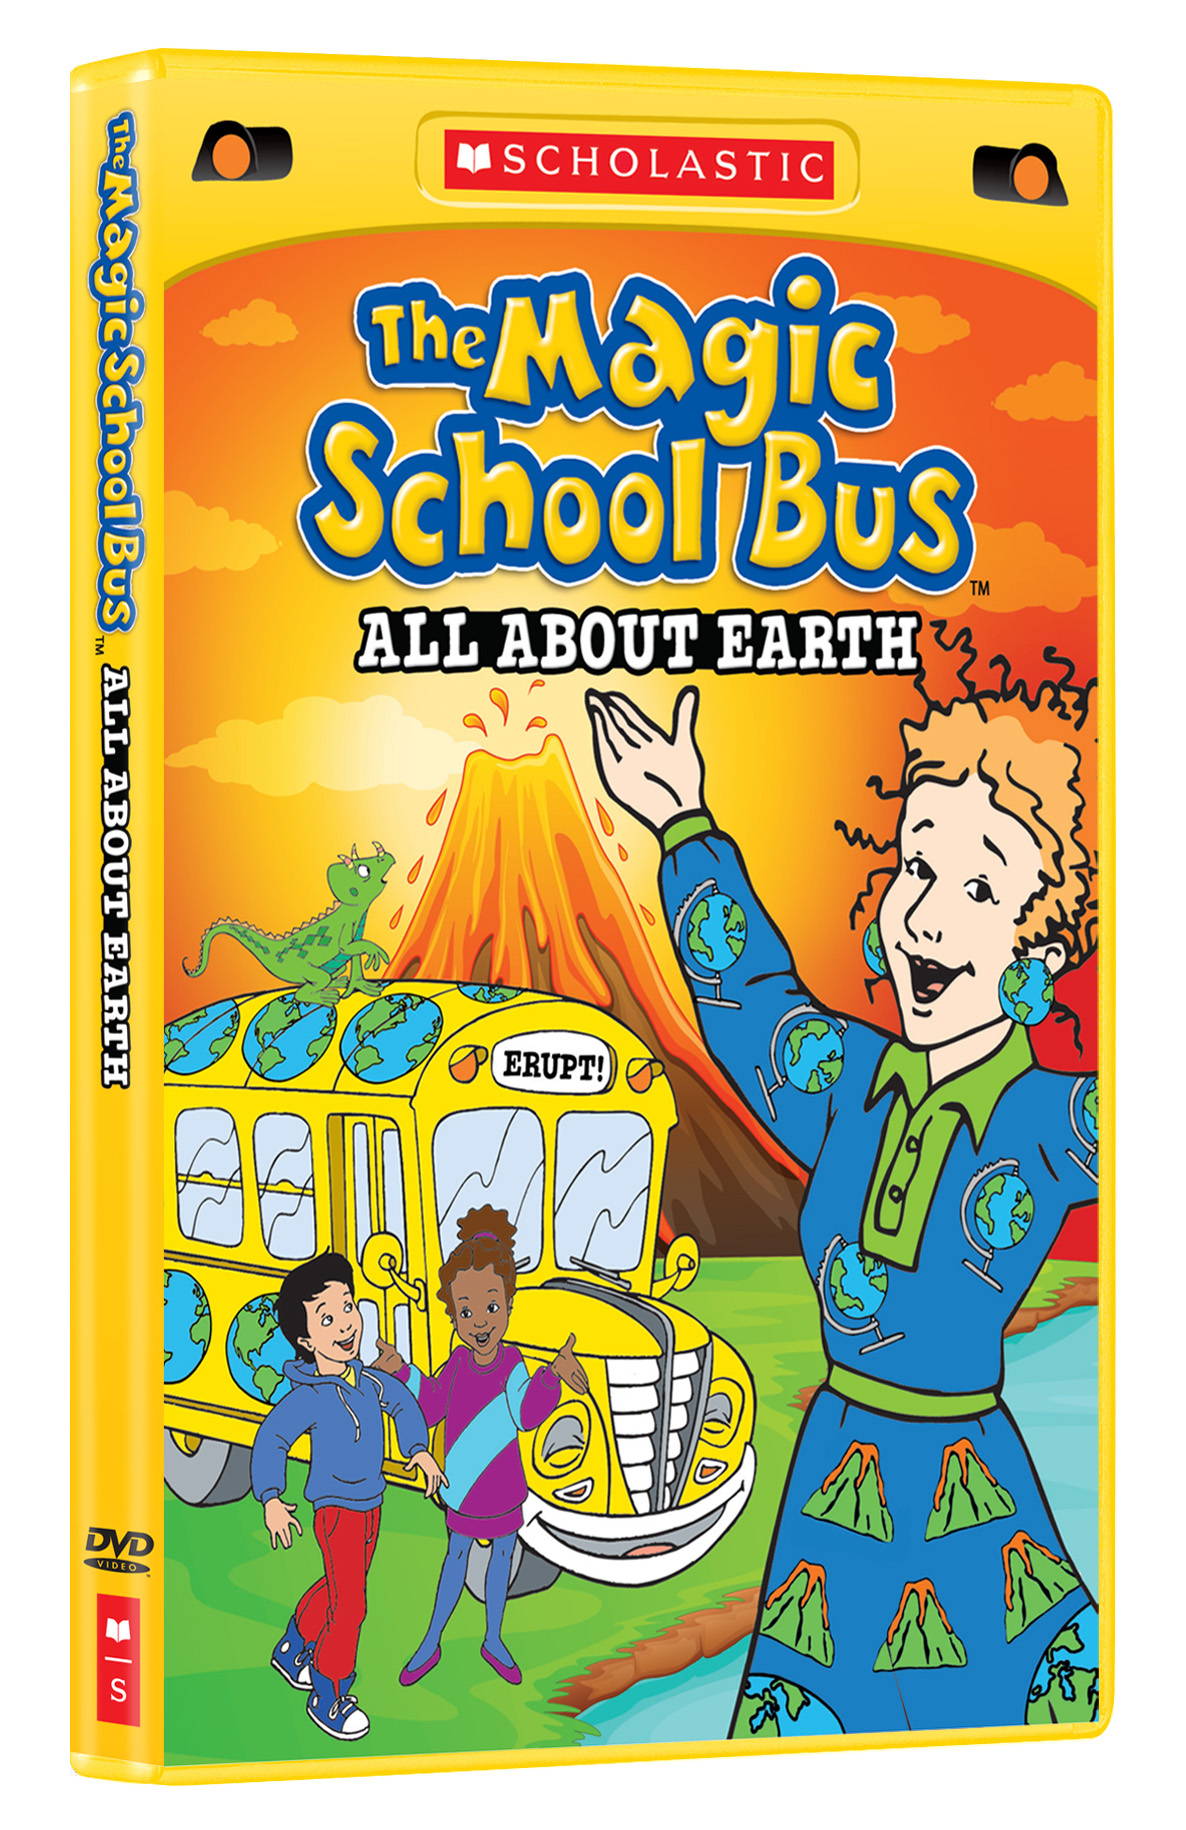 The Magic School Bus All About Earth Earth Day